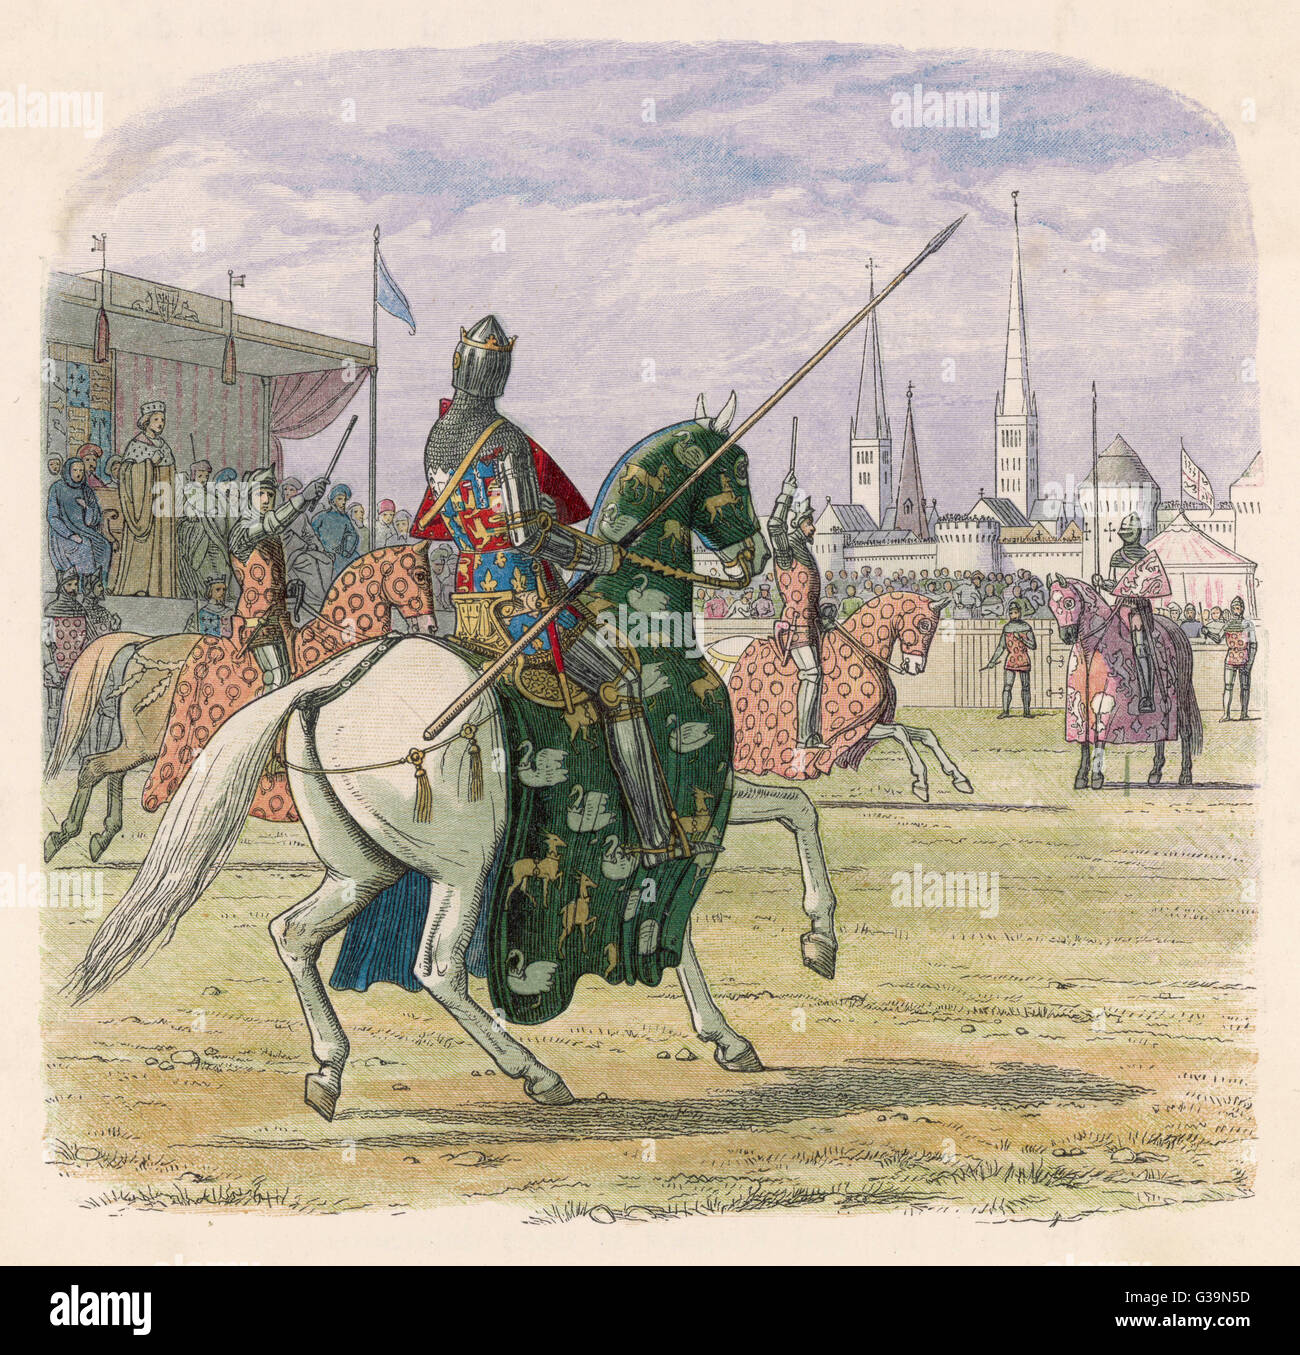 Richard II jousting at Coventry          Date: 16th September 1398 - Stock Image